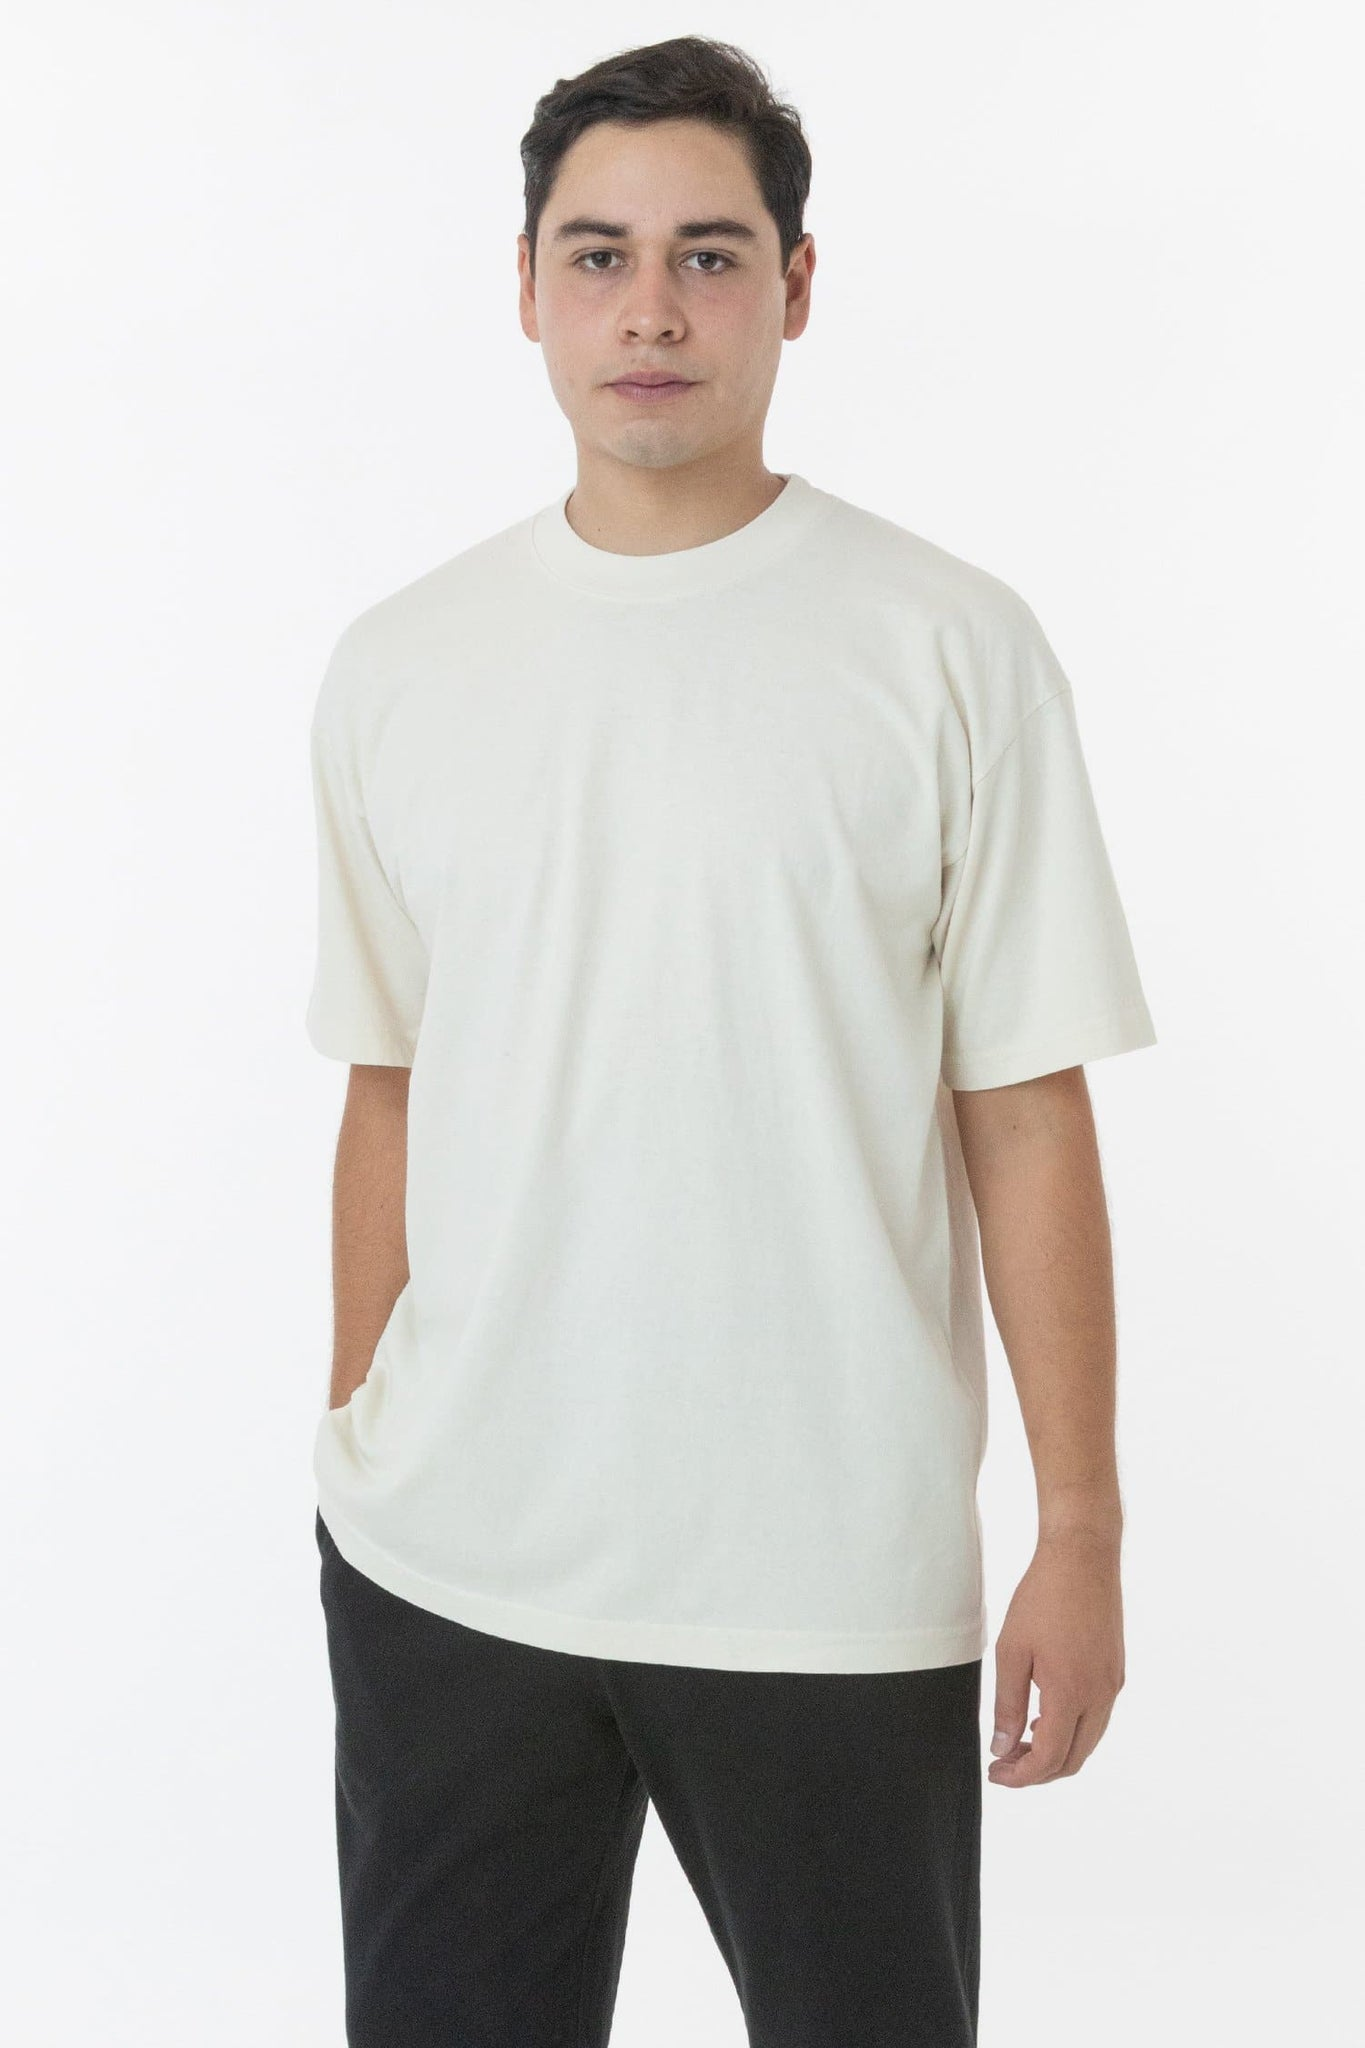 1801GD - 6.5oz Garment Dye Crew Neck T-Shirt (New & Now)